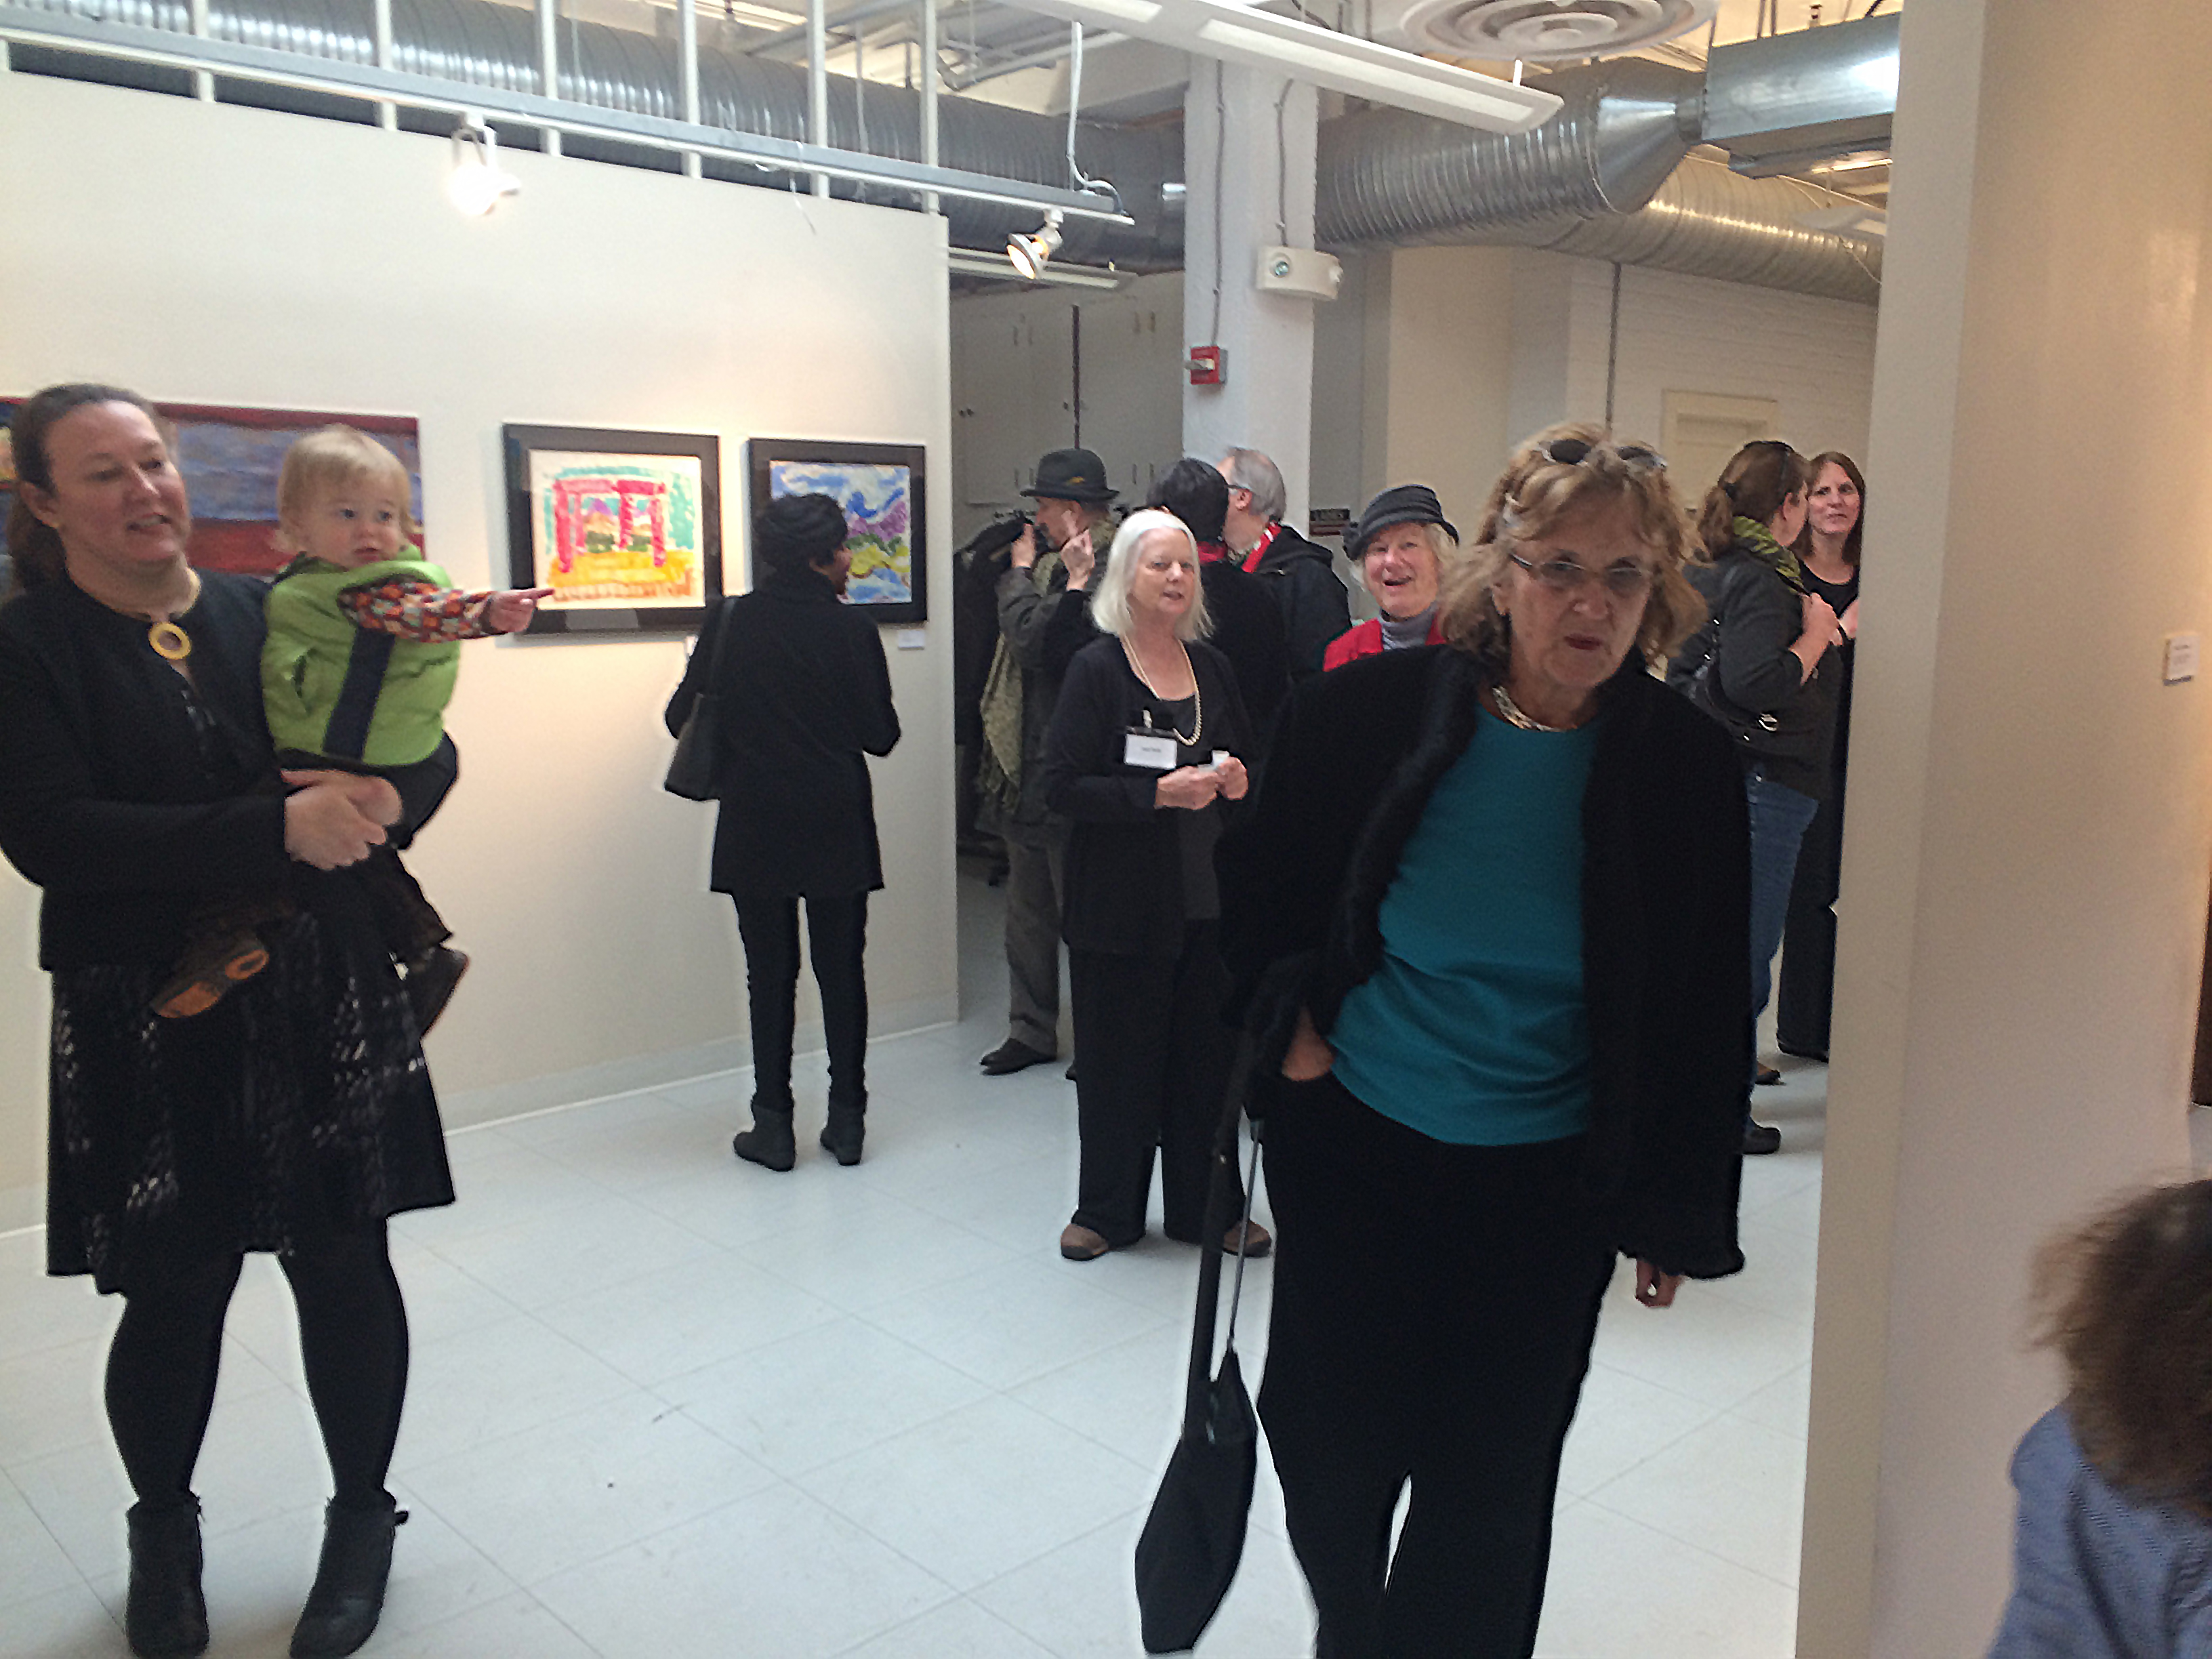 Images from Opening Reception